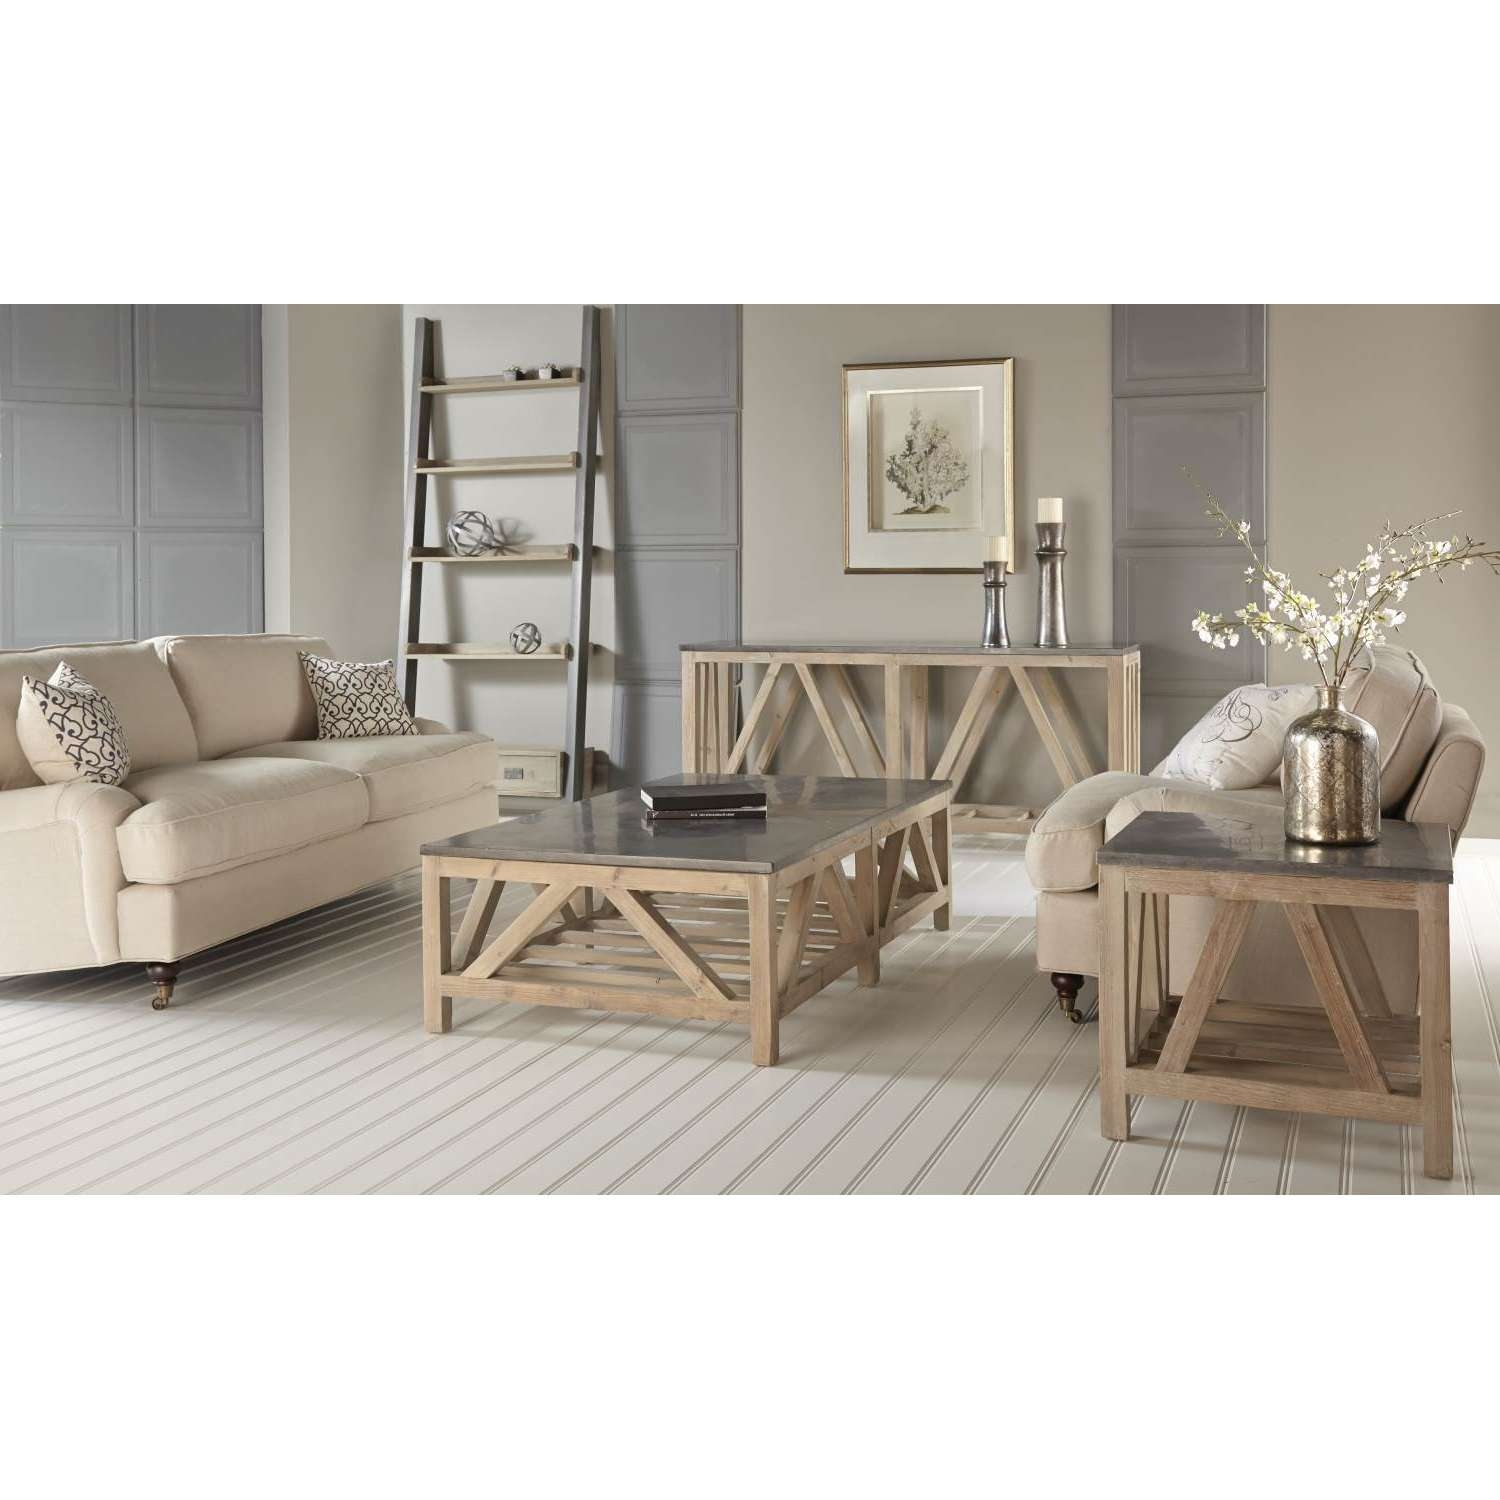 Liming Pertaining To Most Recently Released Beige Coffee Tables (View 10 of 20)